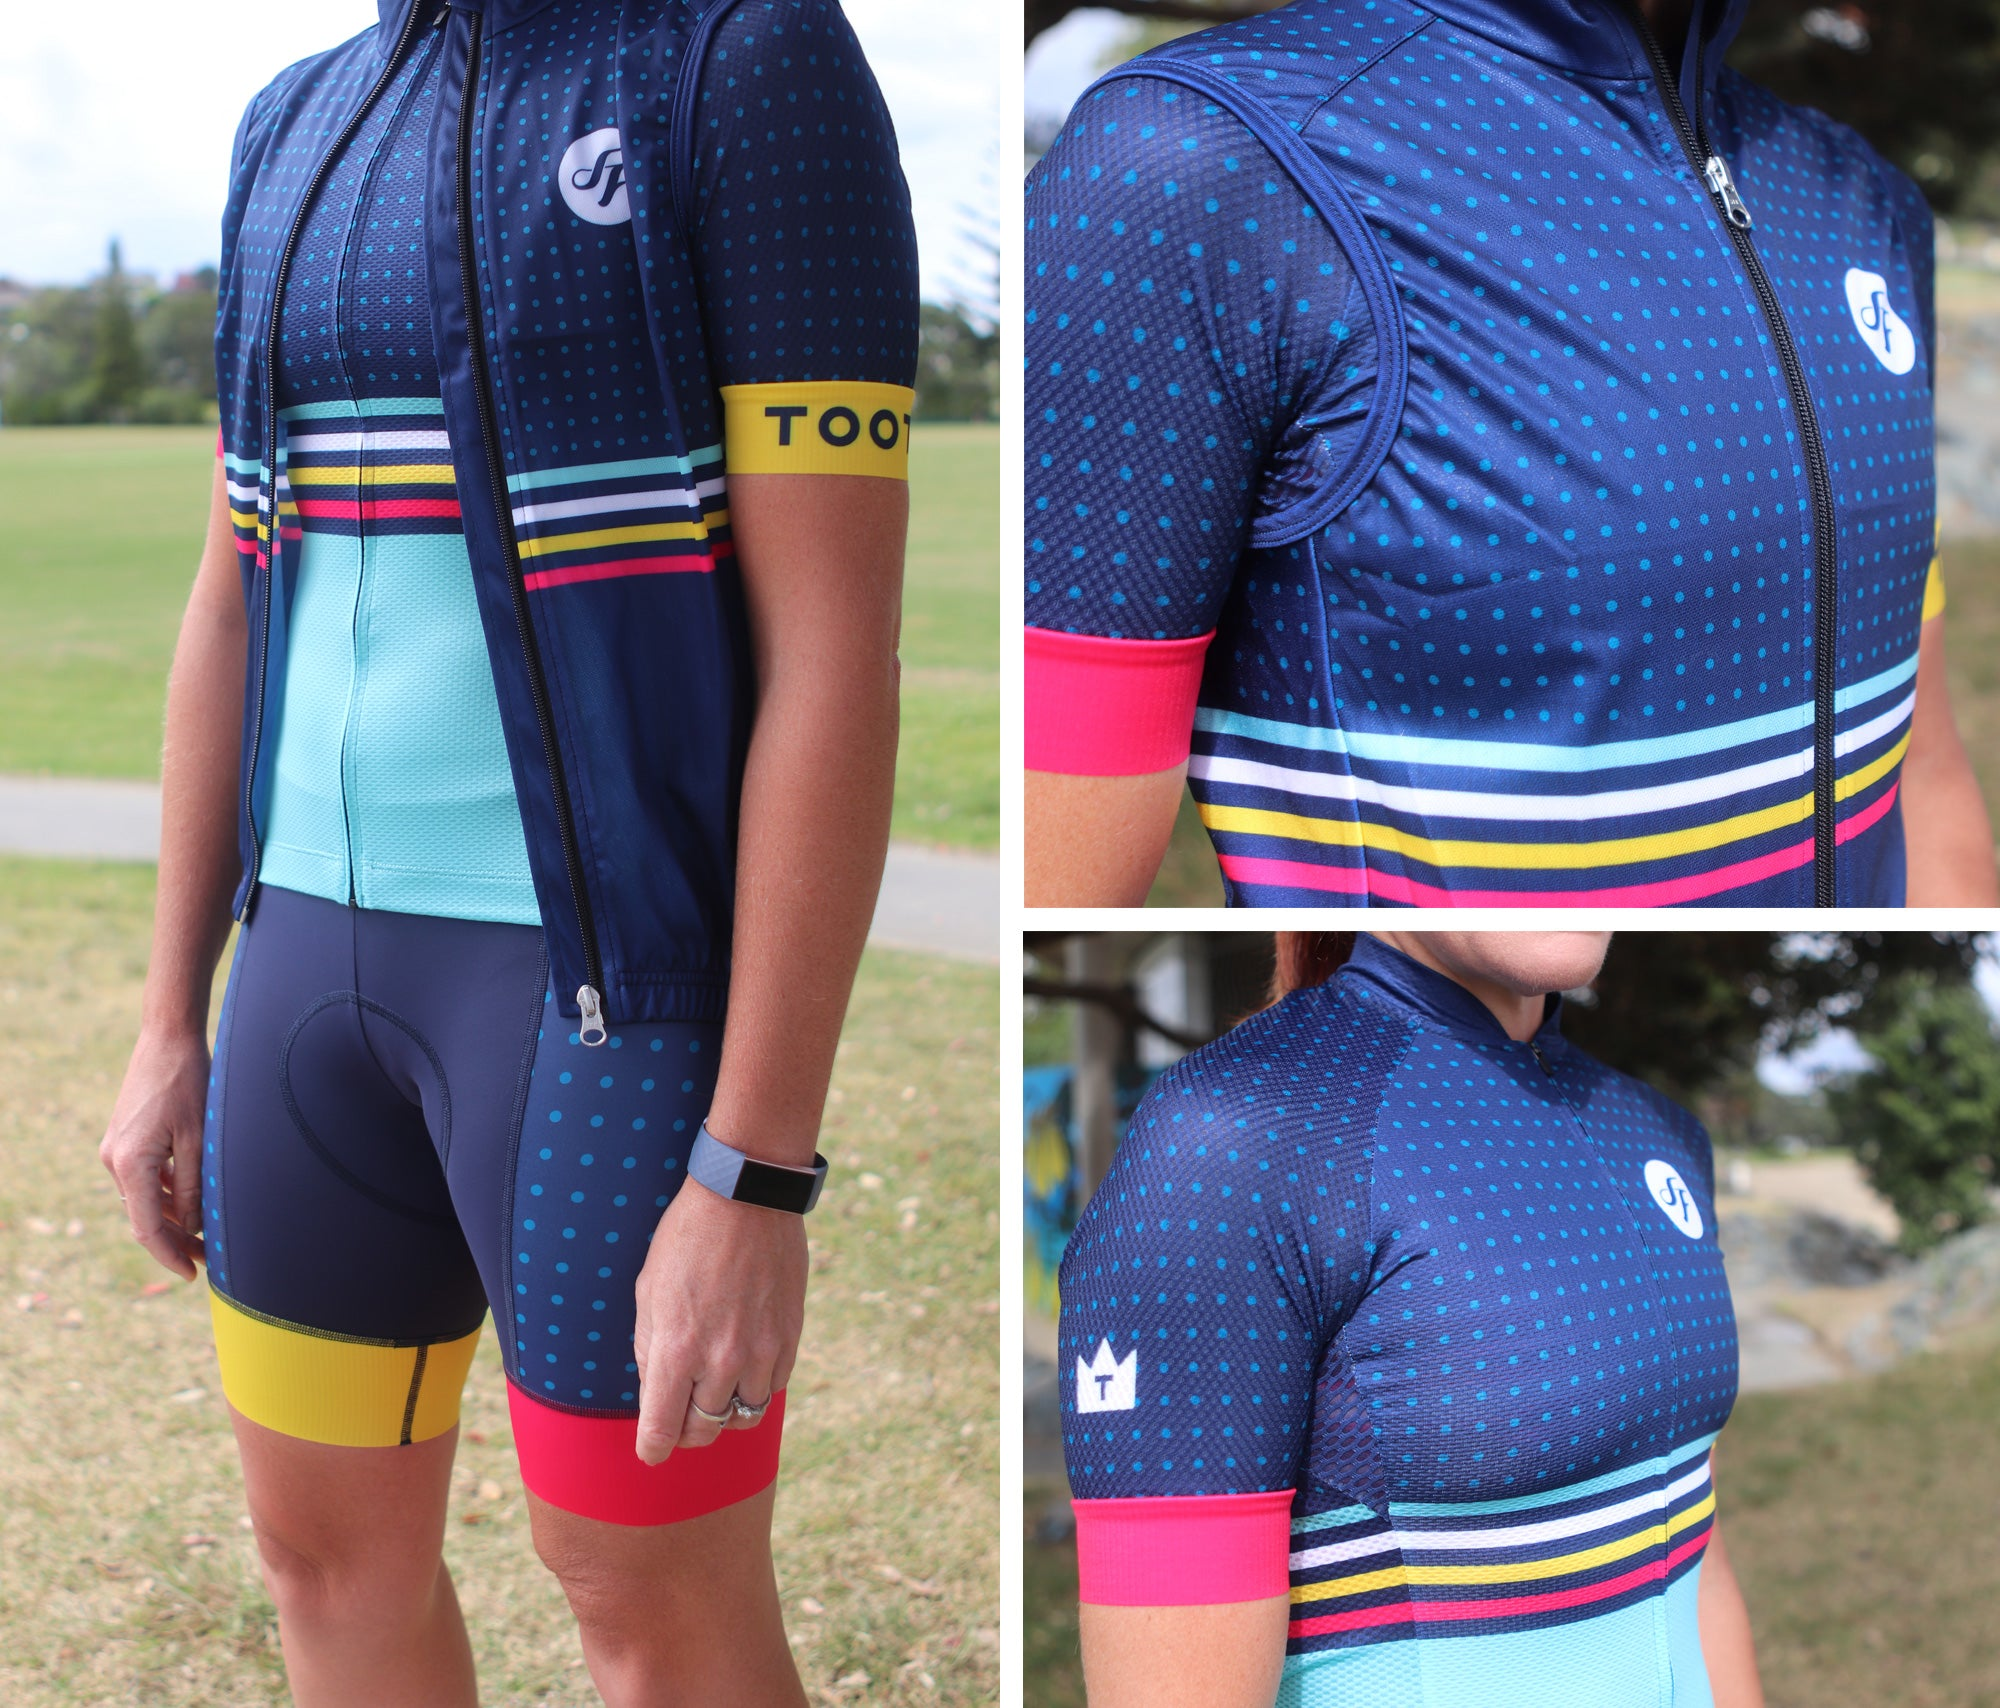 Women's Custom Cycling Kit